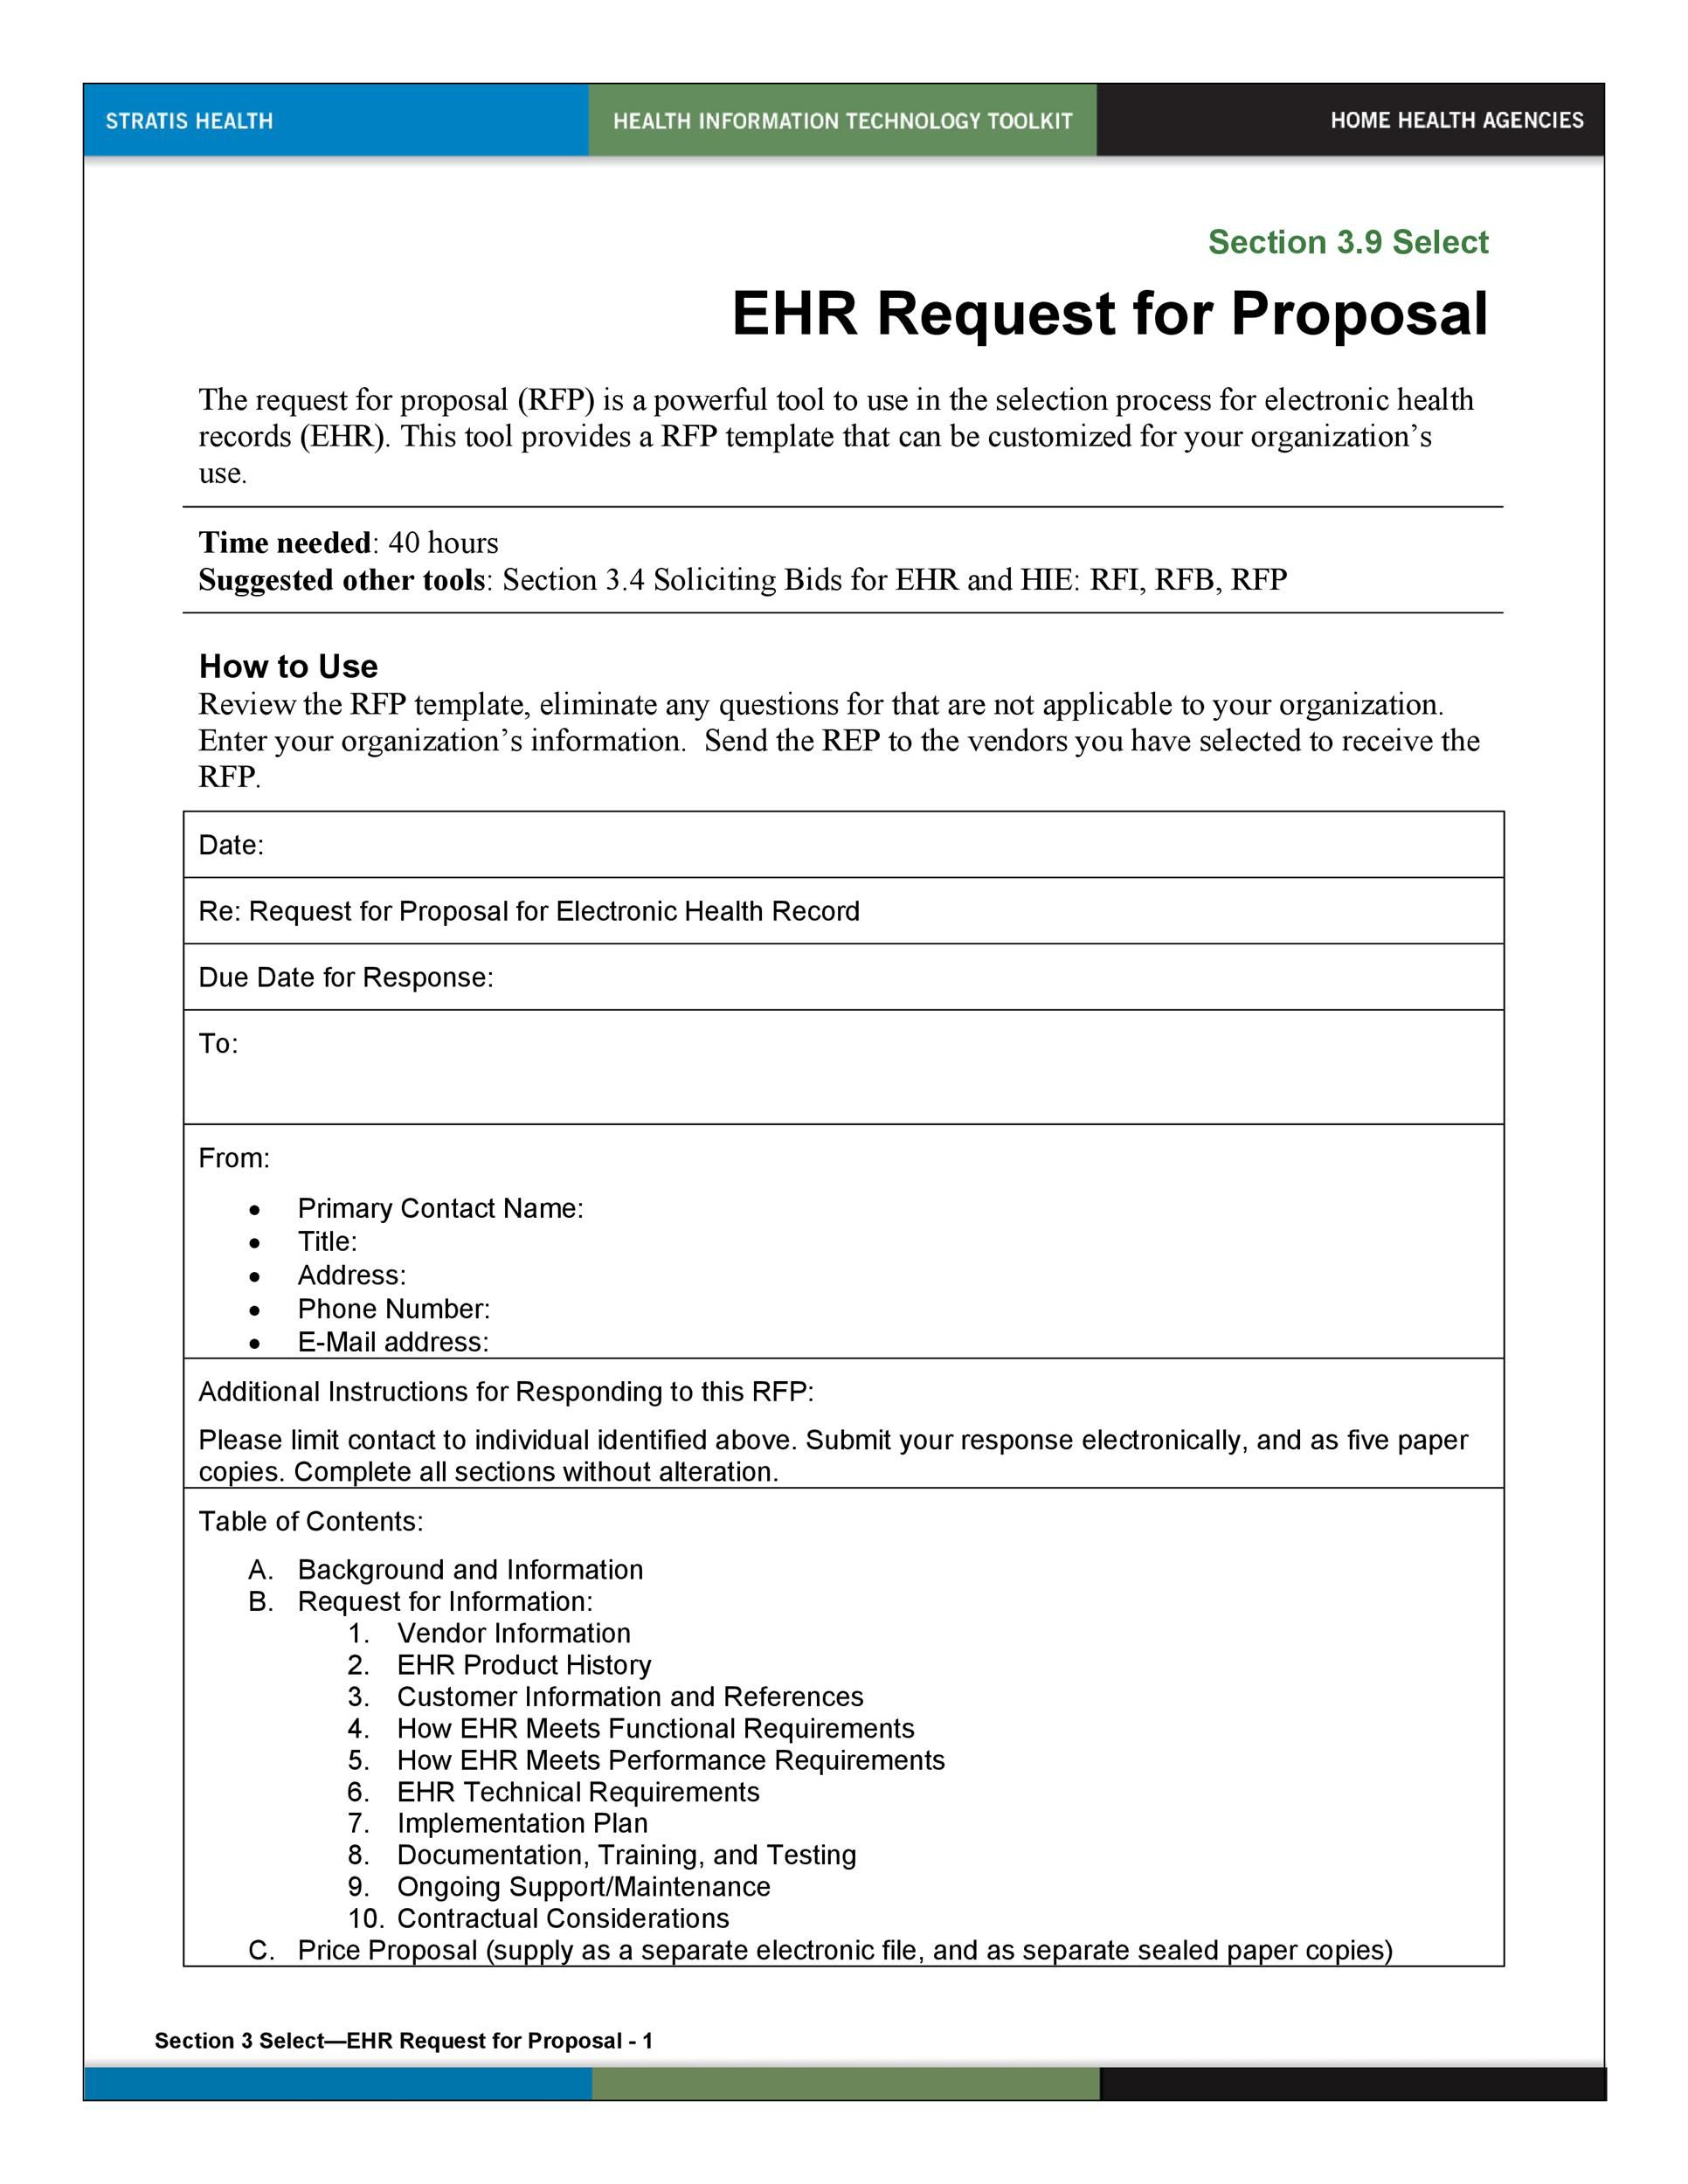 002 Impressive Request For Proposal Response Word Template Concept Full